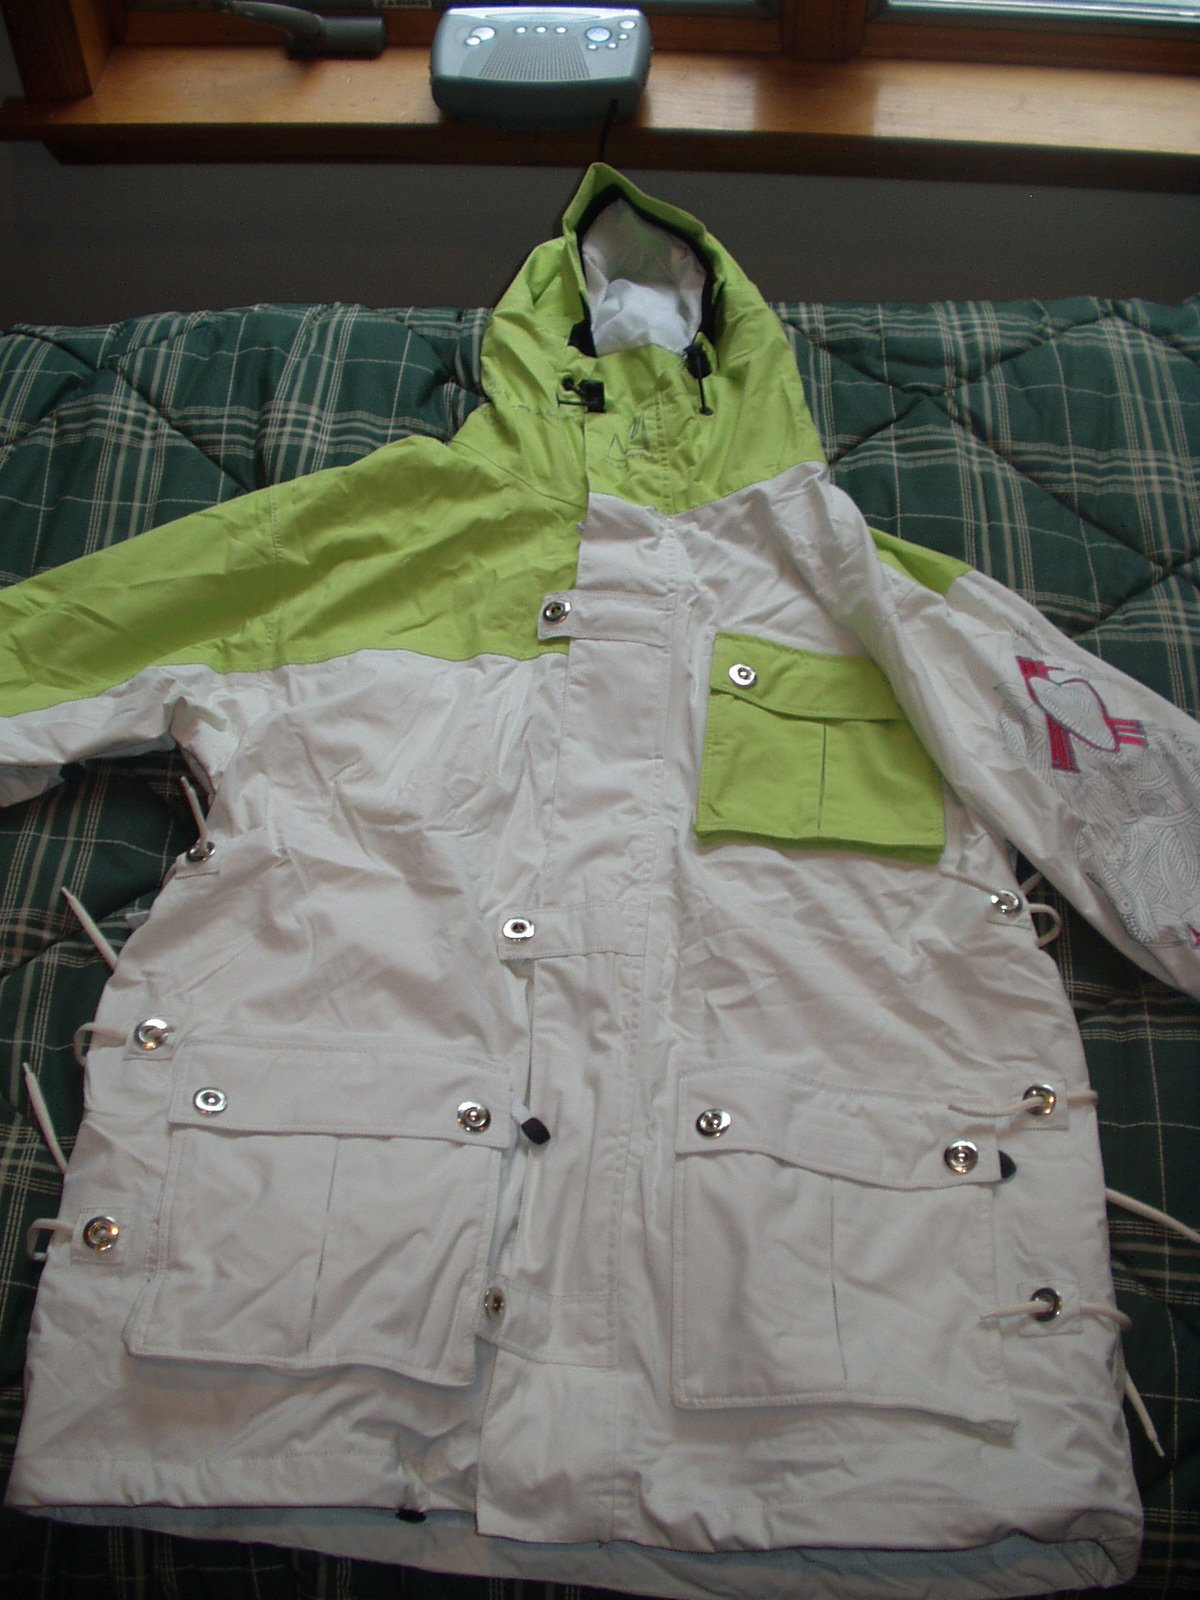 Outerwear - 10 of 16